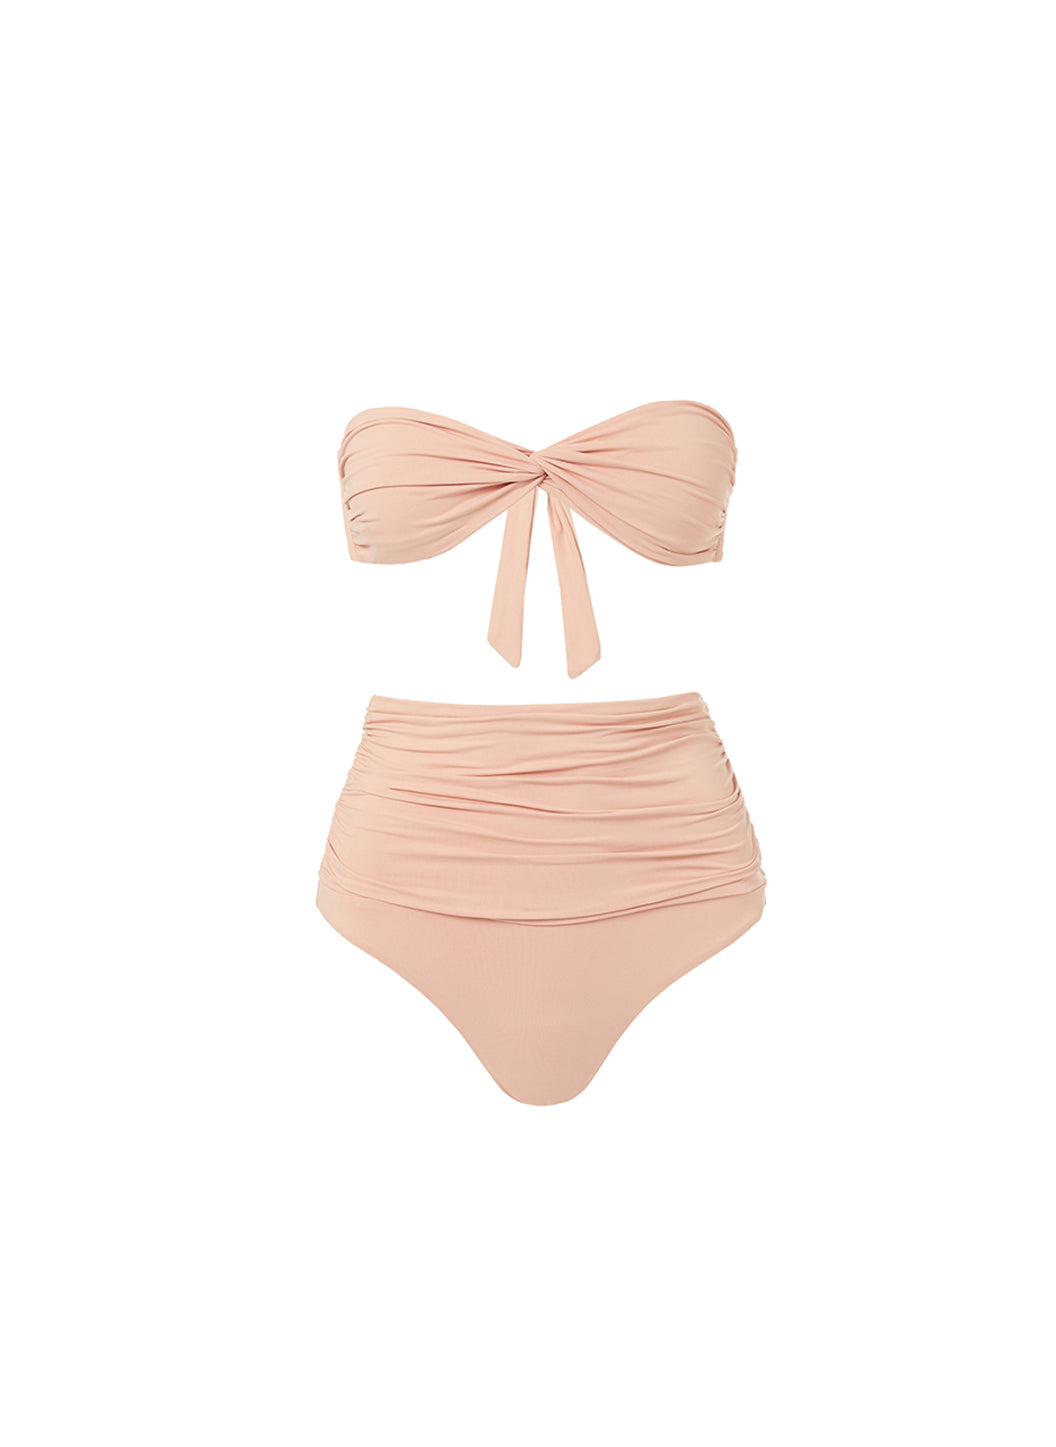 Lyon Tan High Waisted Bandeau Bikini